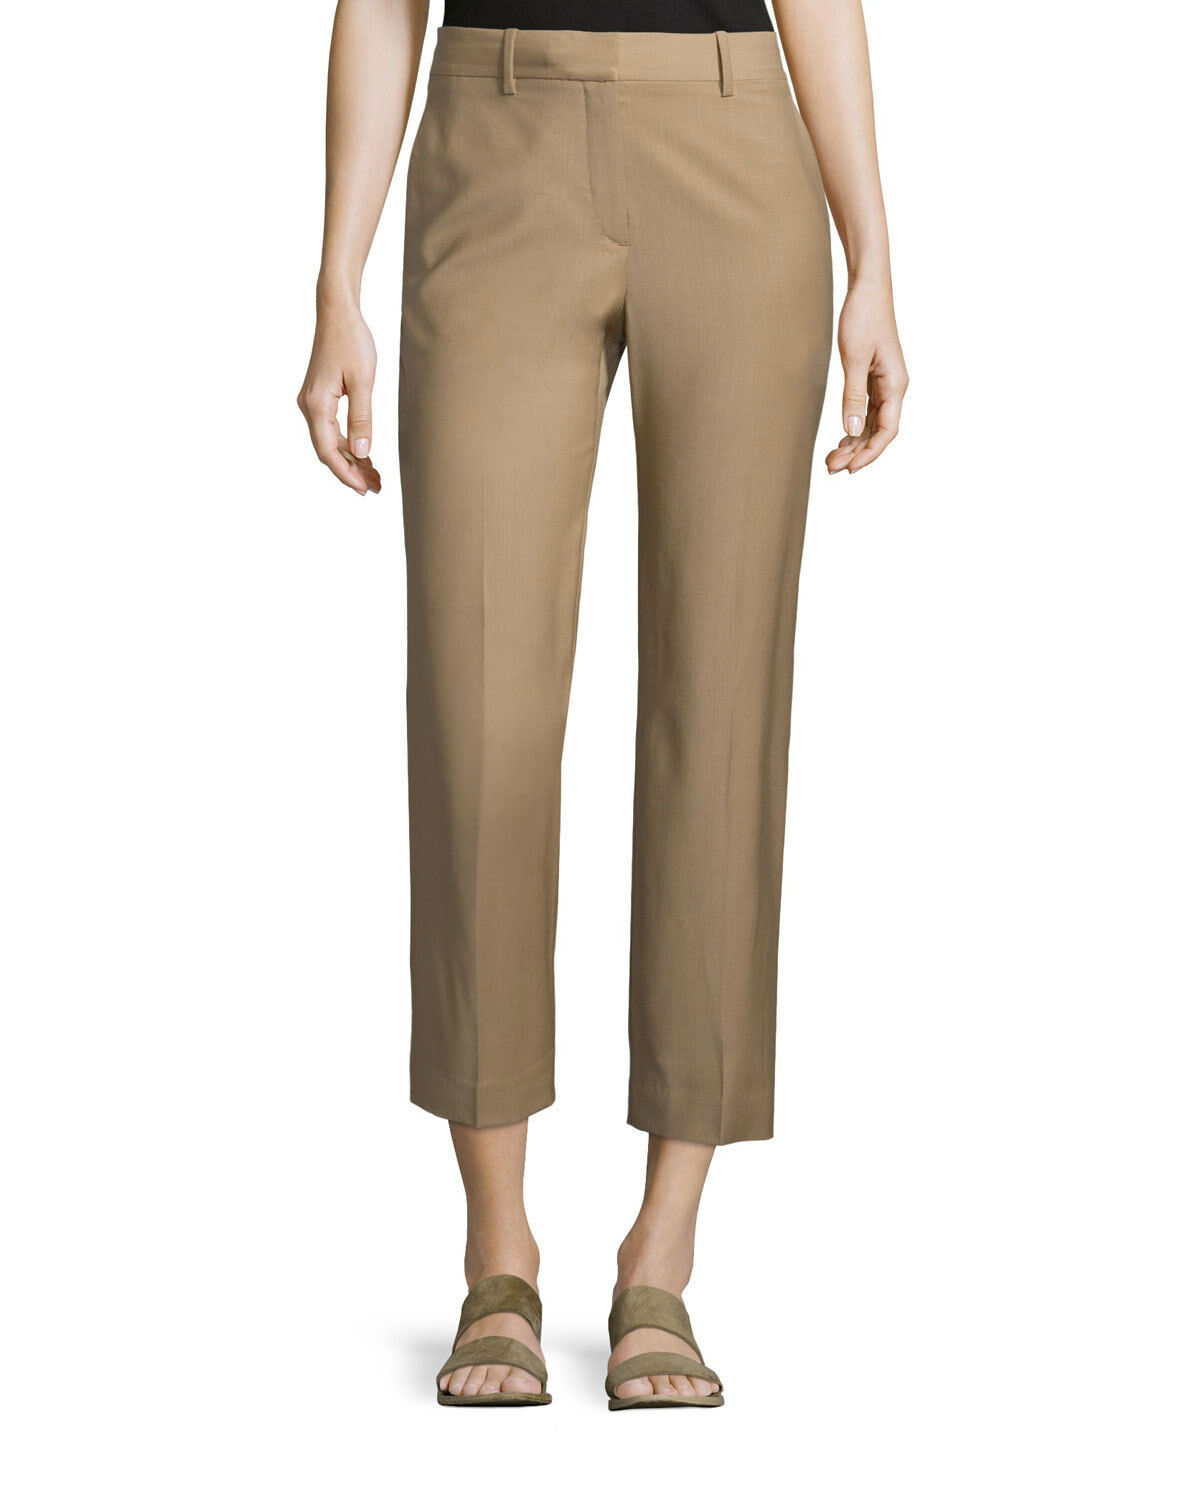 NWT Theory Lavzin Continuous Wool-Blend Ankle Pants Saddle Khaki Größe 4,6  315